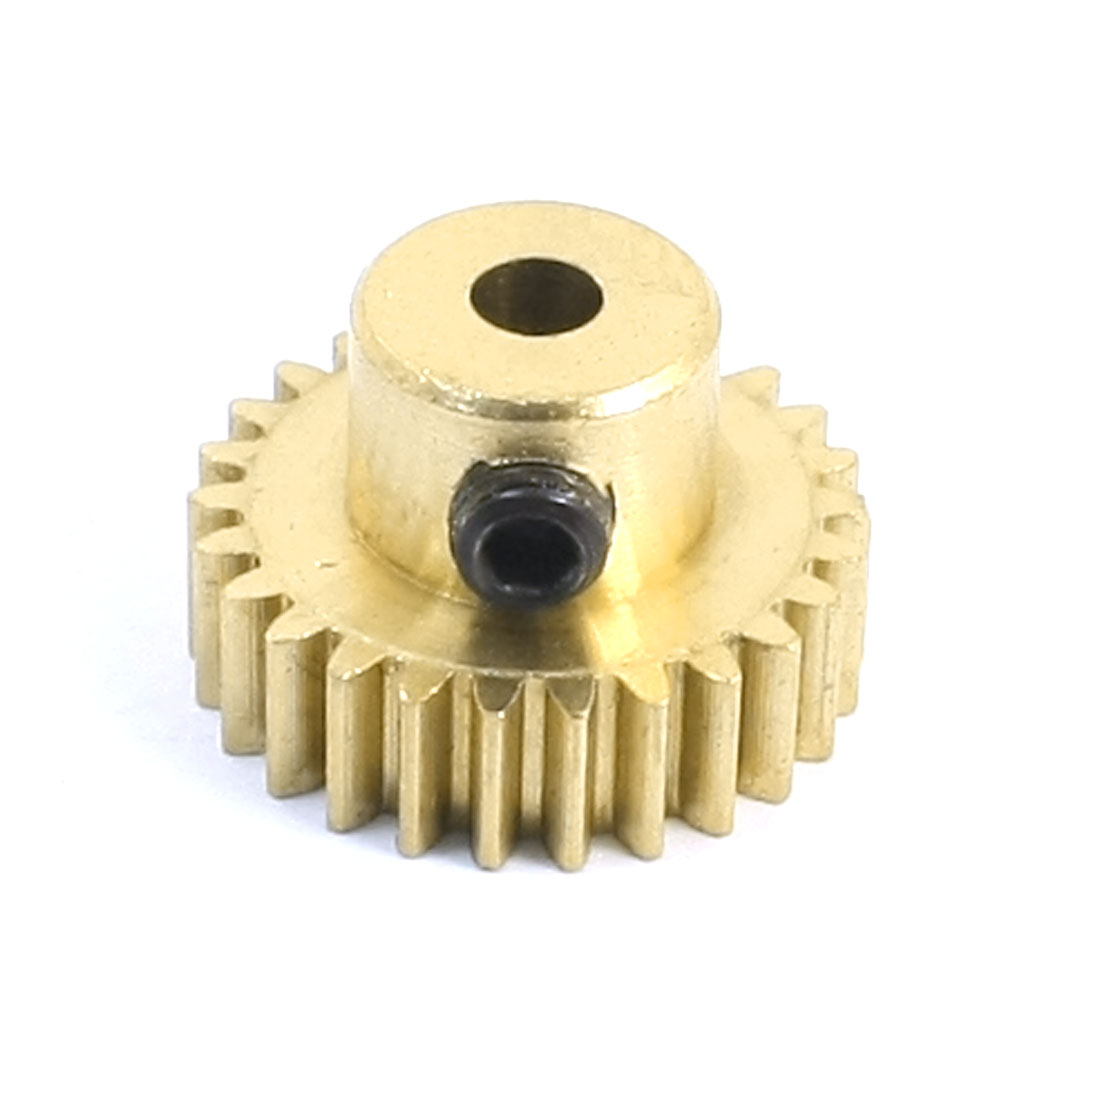 Repairing Motor Gear 26T 03005 Upgrade Parts for HSP 1:10 Scale RC Model Car